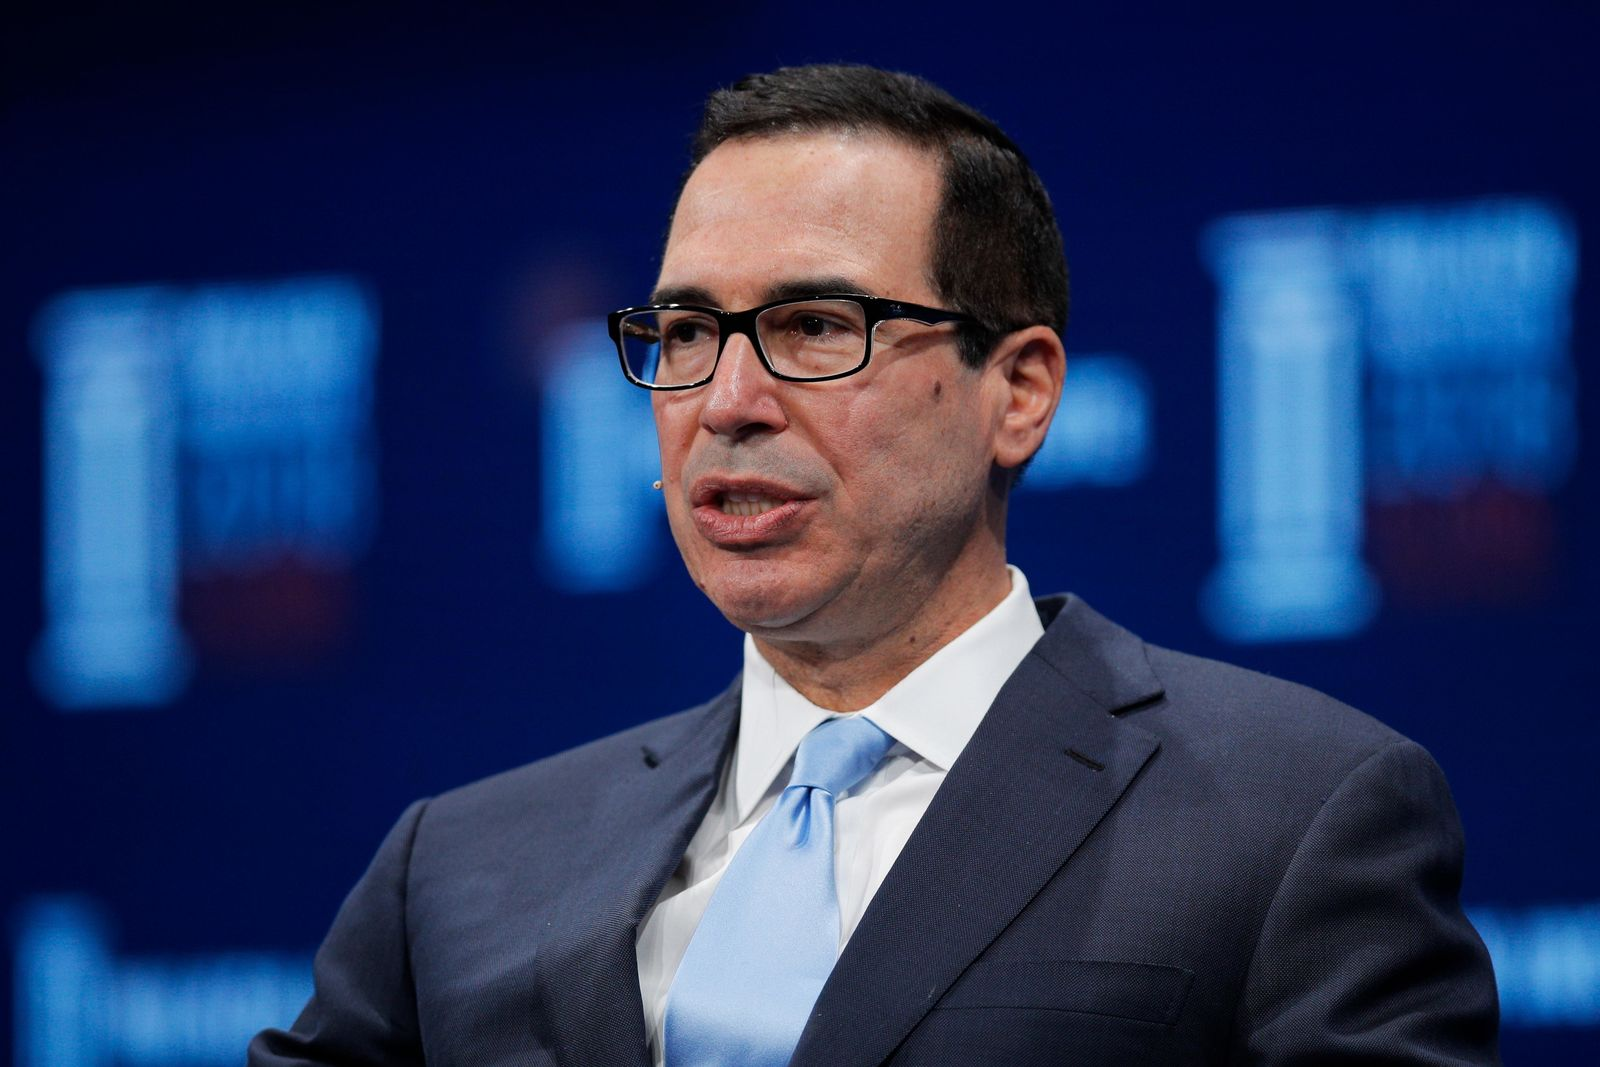 FILE - In this April 30, 2018, file photo, Treasury Secretary Steven Mnuchin speaks during a discussion at the Milken Institute Global Conference, in Beverly Hills, Calif. (AP Photo/Jae C. Hong, File)